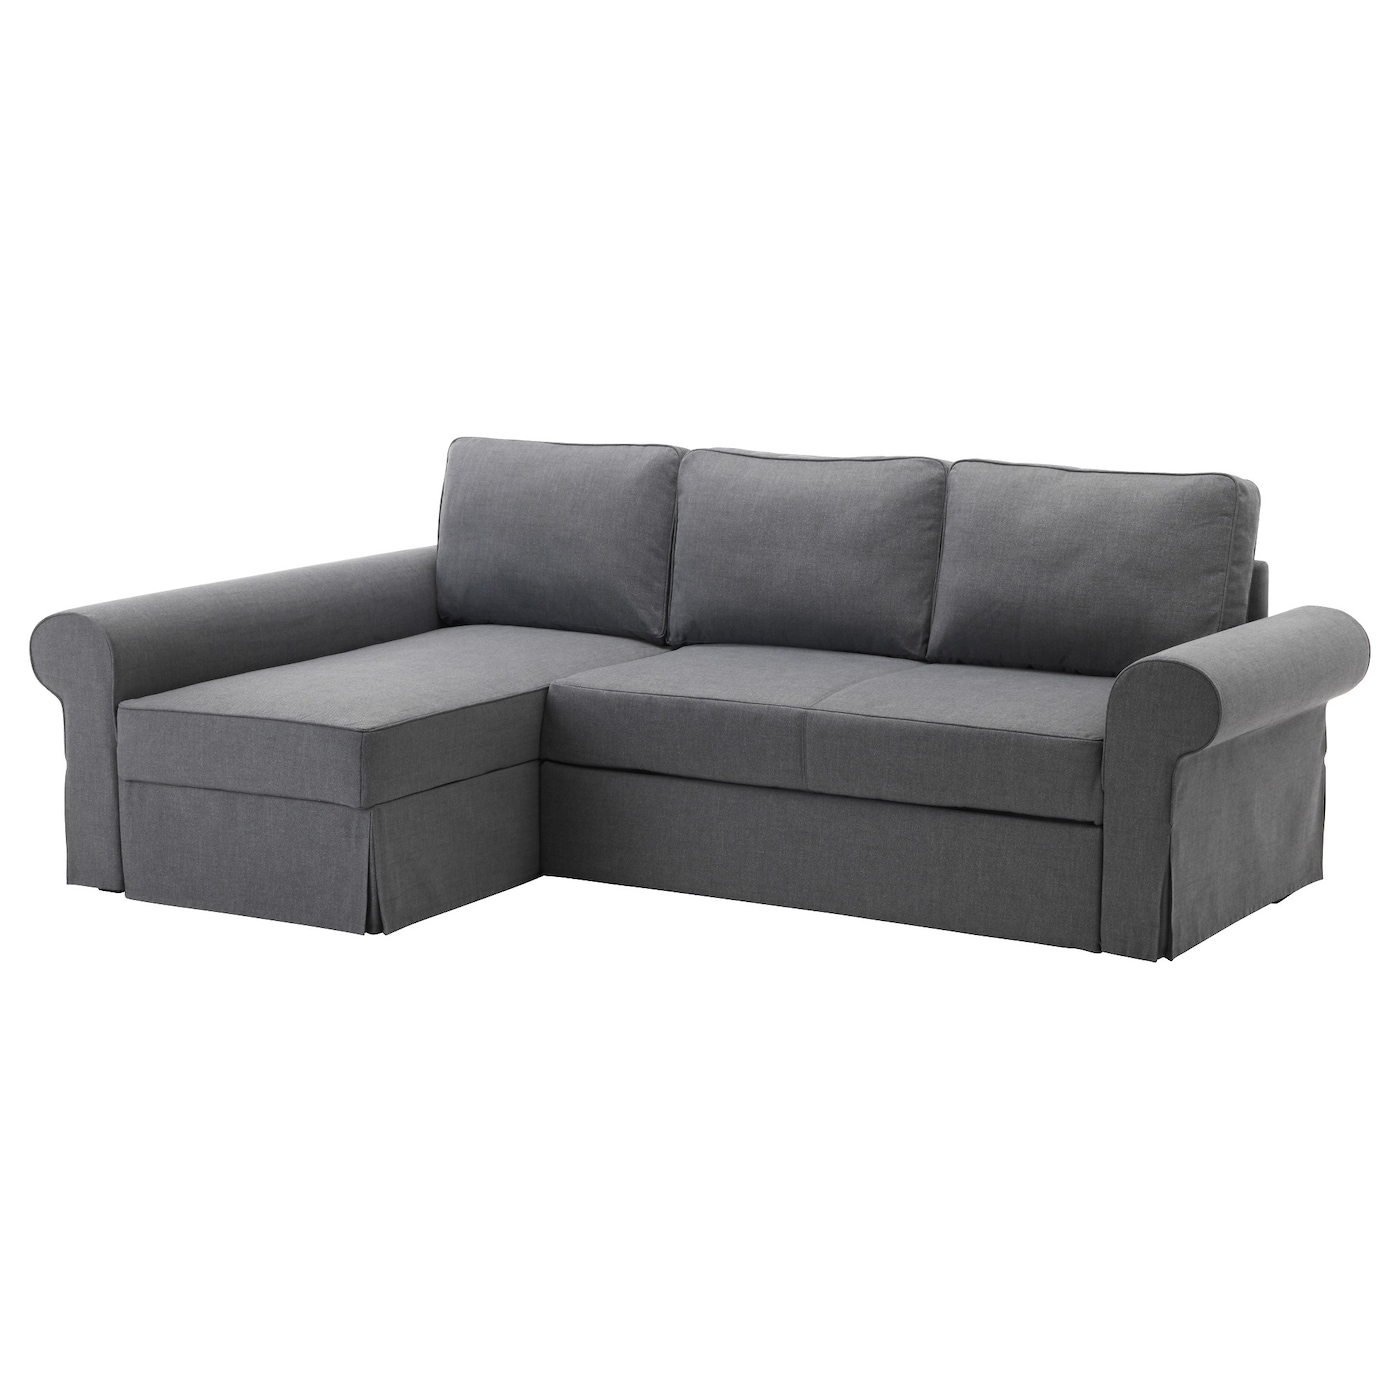 Backabro sofa bed with chaise longue nordvalla dark grey for Chaise longue bank